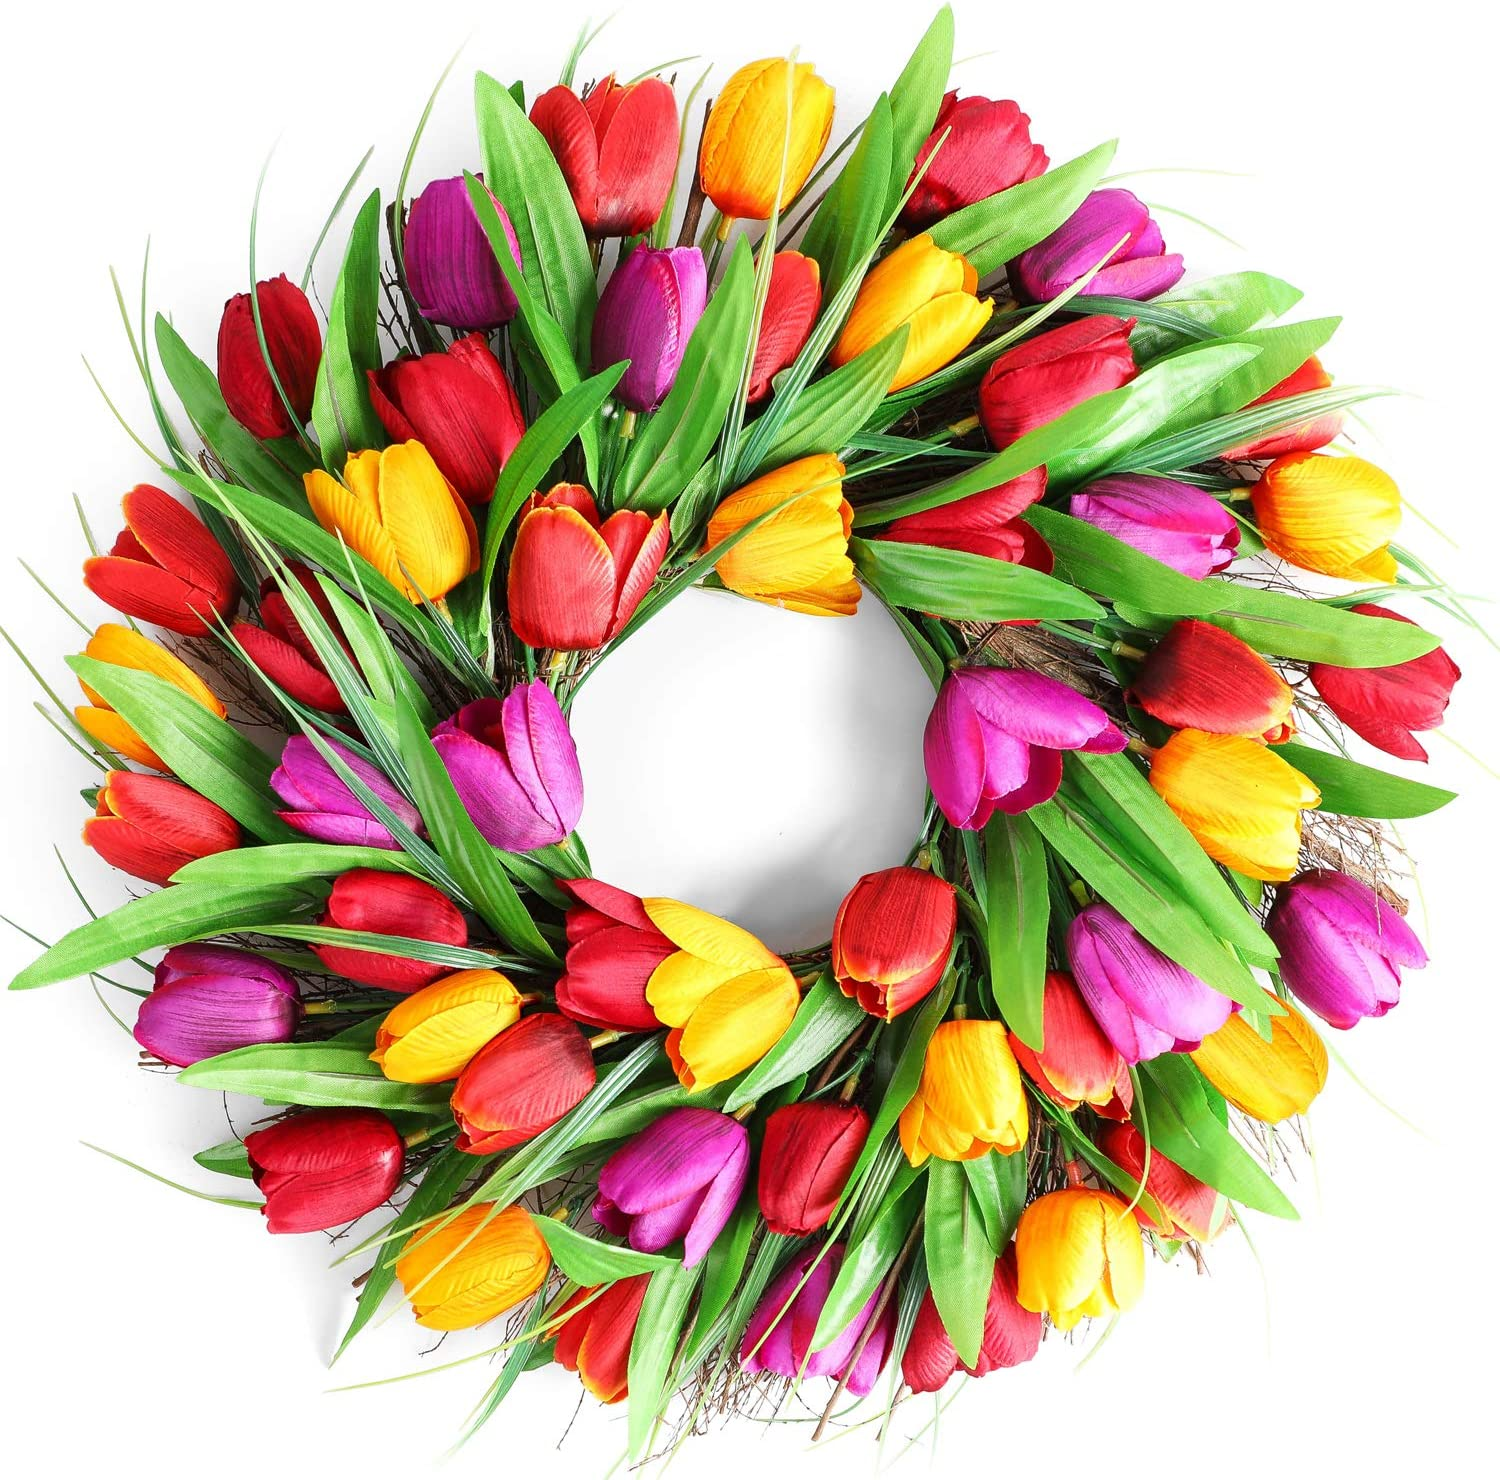 "LASPERAL Tulip Wreath Flower Wreaths for Front Door 16.5"" Tulip Wreath Front Door Wreath Home Décor for Window Wall Party Wedding Valentines Day Hanging Decorations"